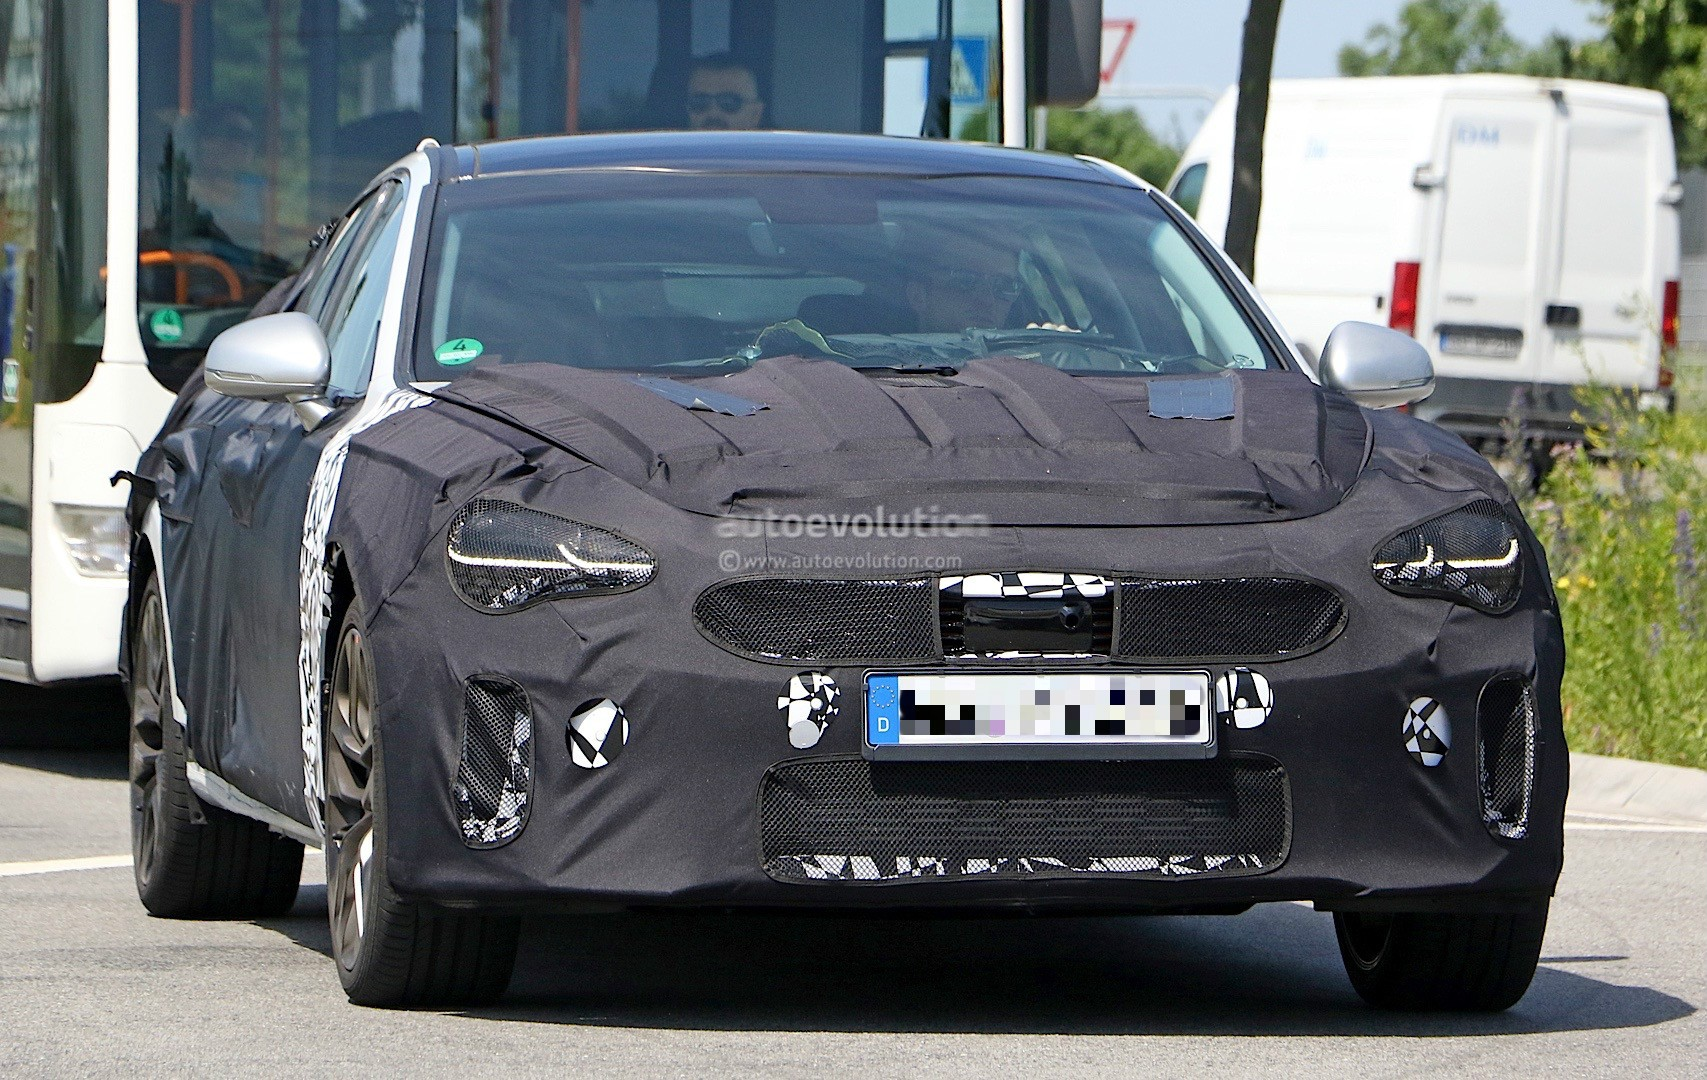 2018-kia-g​t-spied-in​-germany-c​ould-to-be​-called-st​inger_1